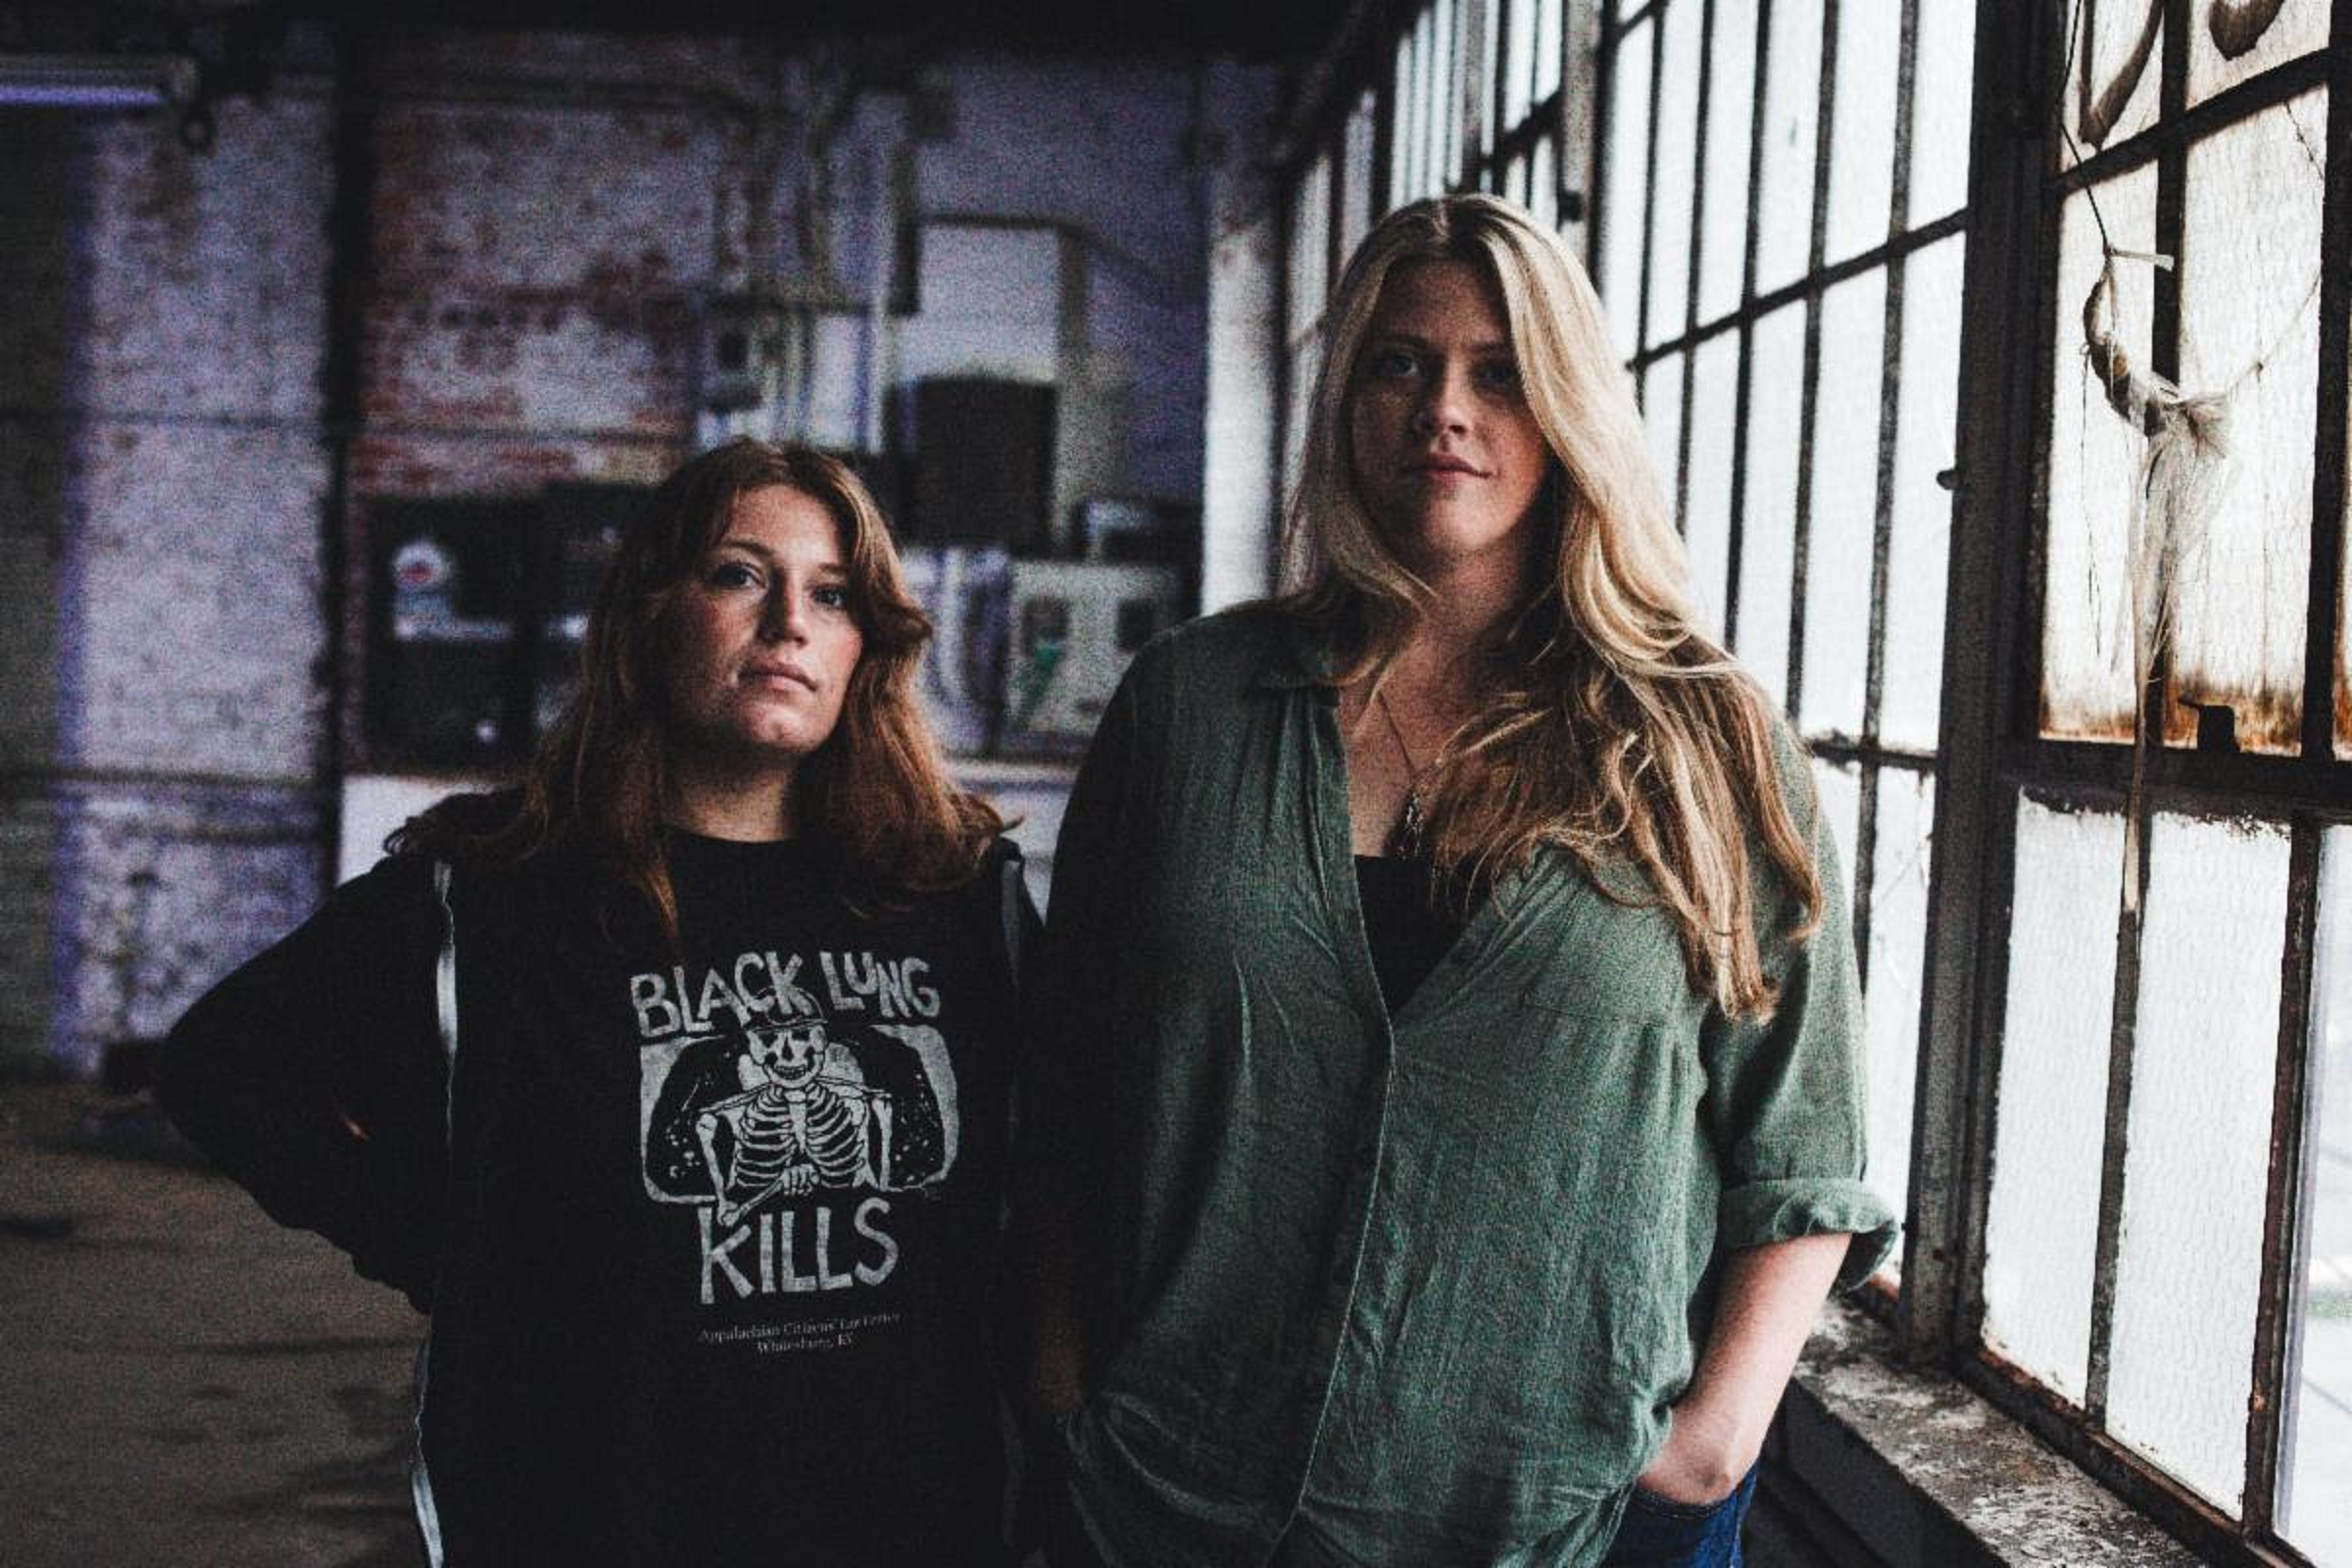 The Local Honeys Release A Pair Of Ever-Poignant Singles About The Tribulations Of Coal Mining In Their Native Kentucky